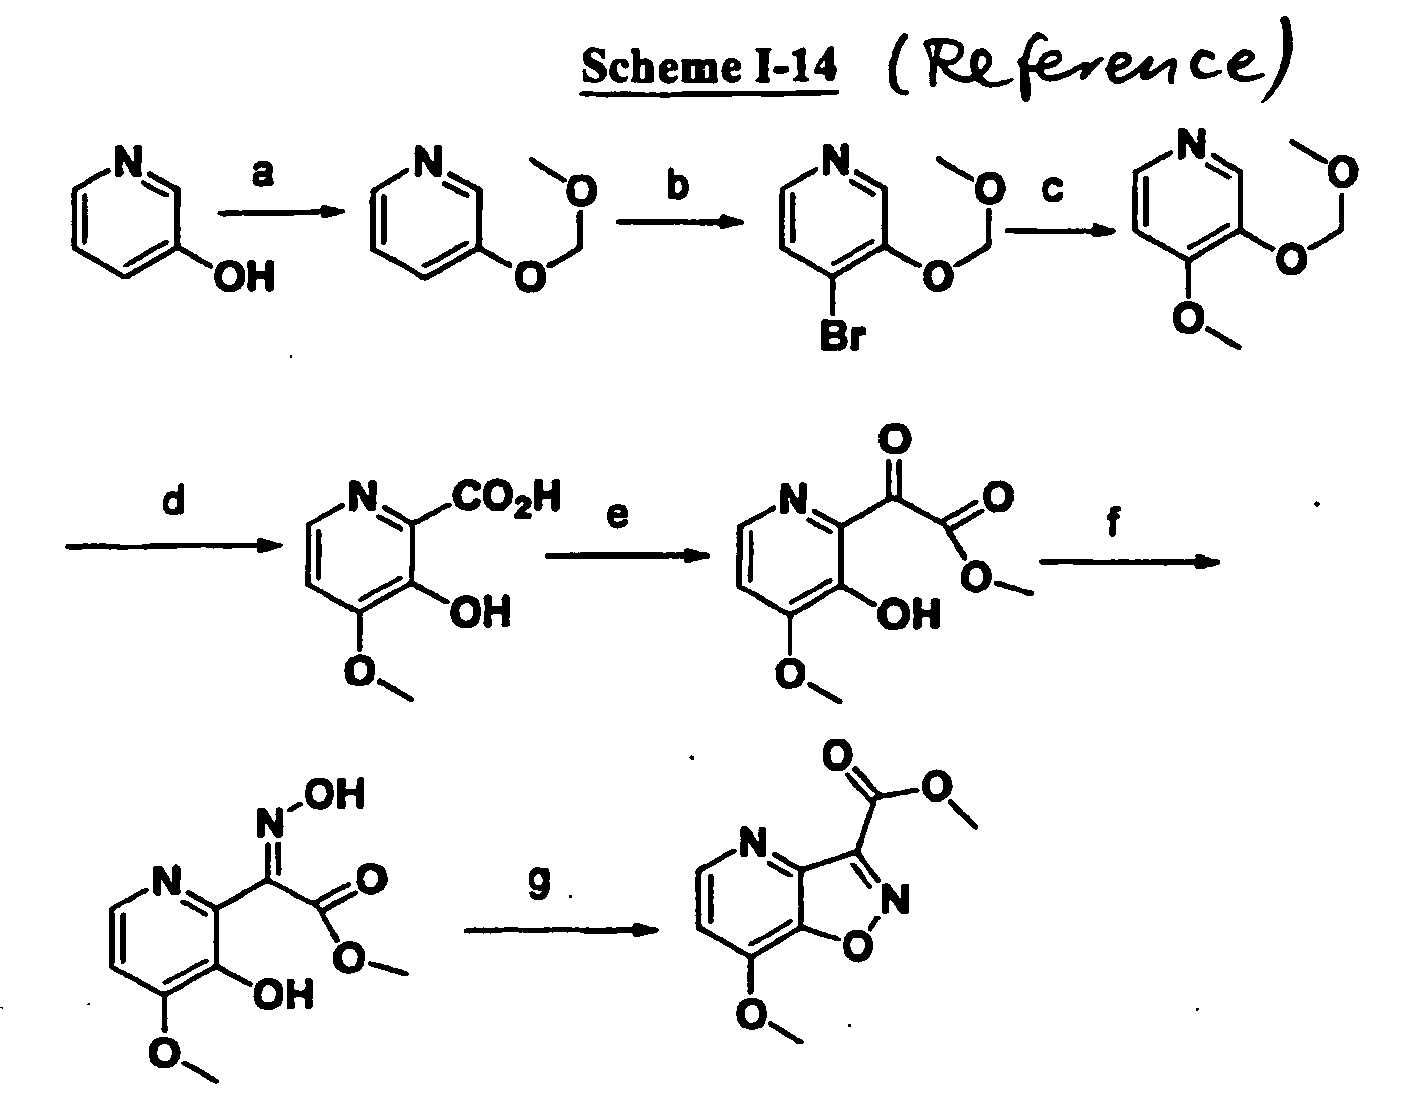 Ep1381366b1 Indole Azaindole And Related Heterocyclic Meyer E 57h Wiring Diagram For Plow Figure Imgb0017